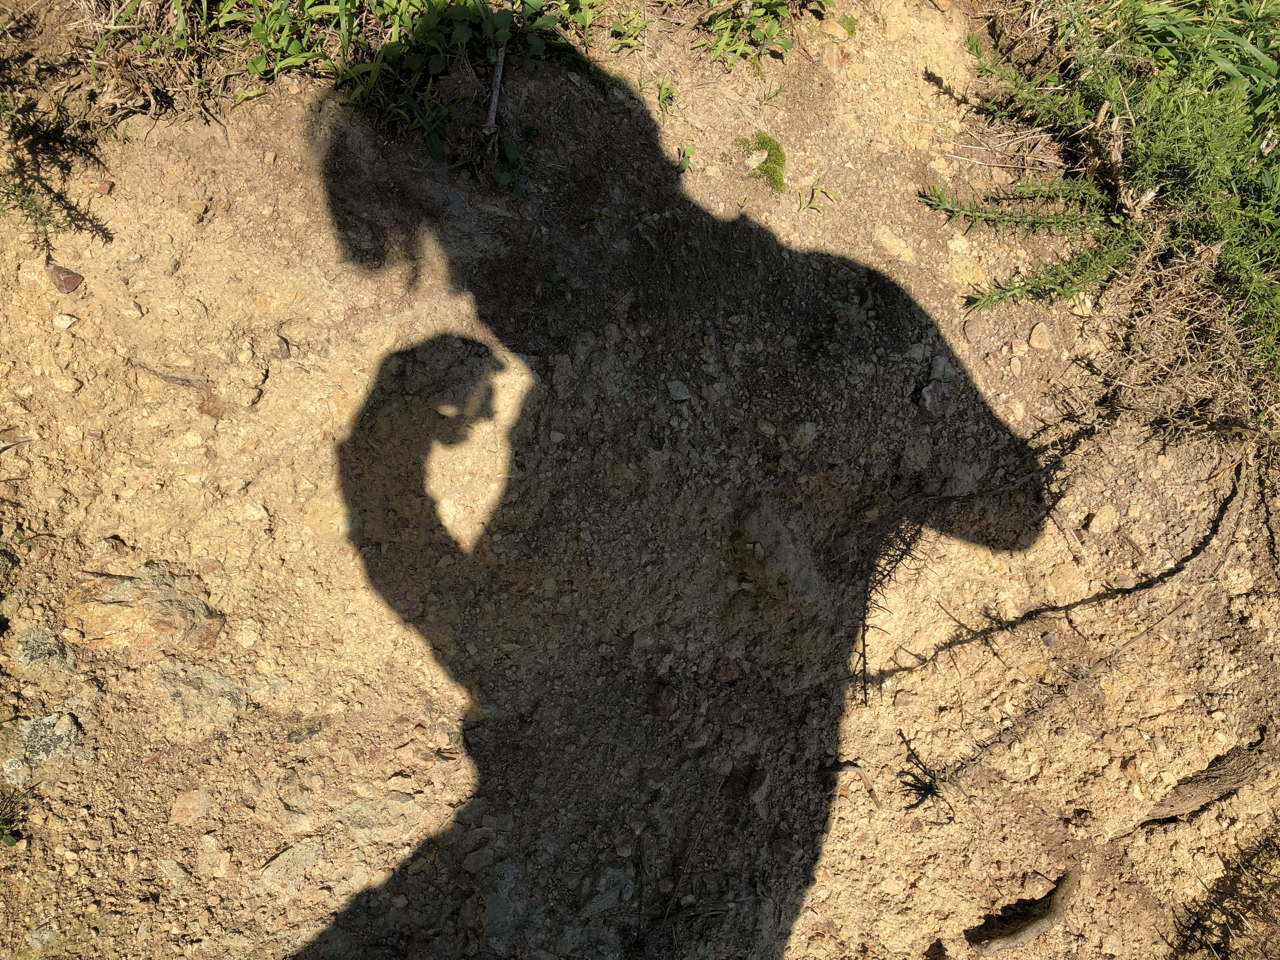 Shadow against clay of an ugly monster